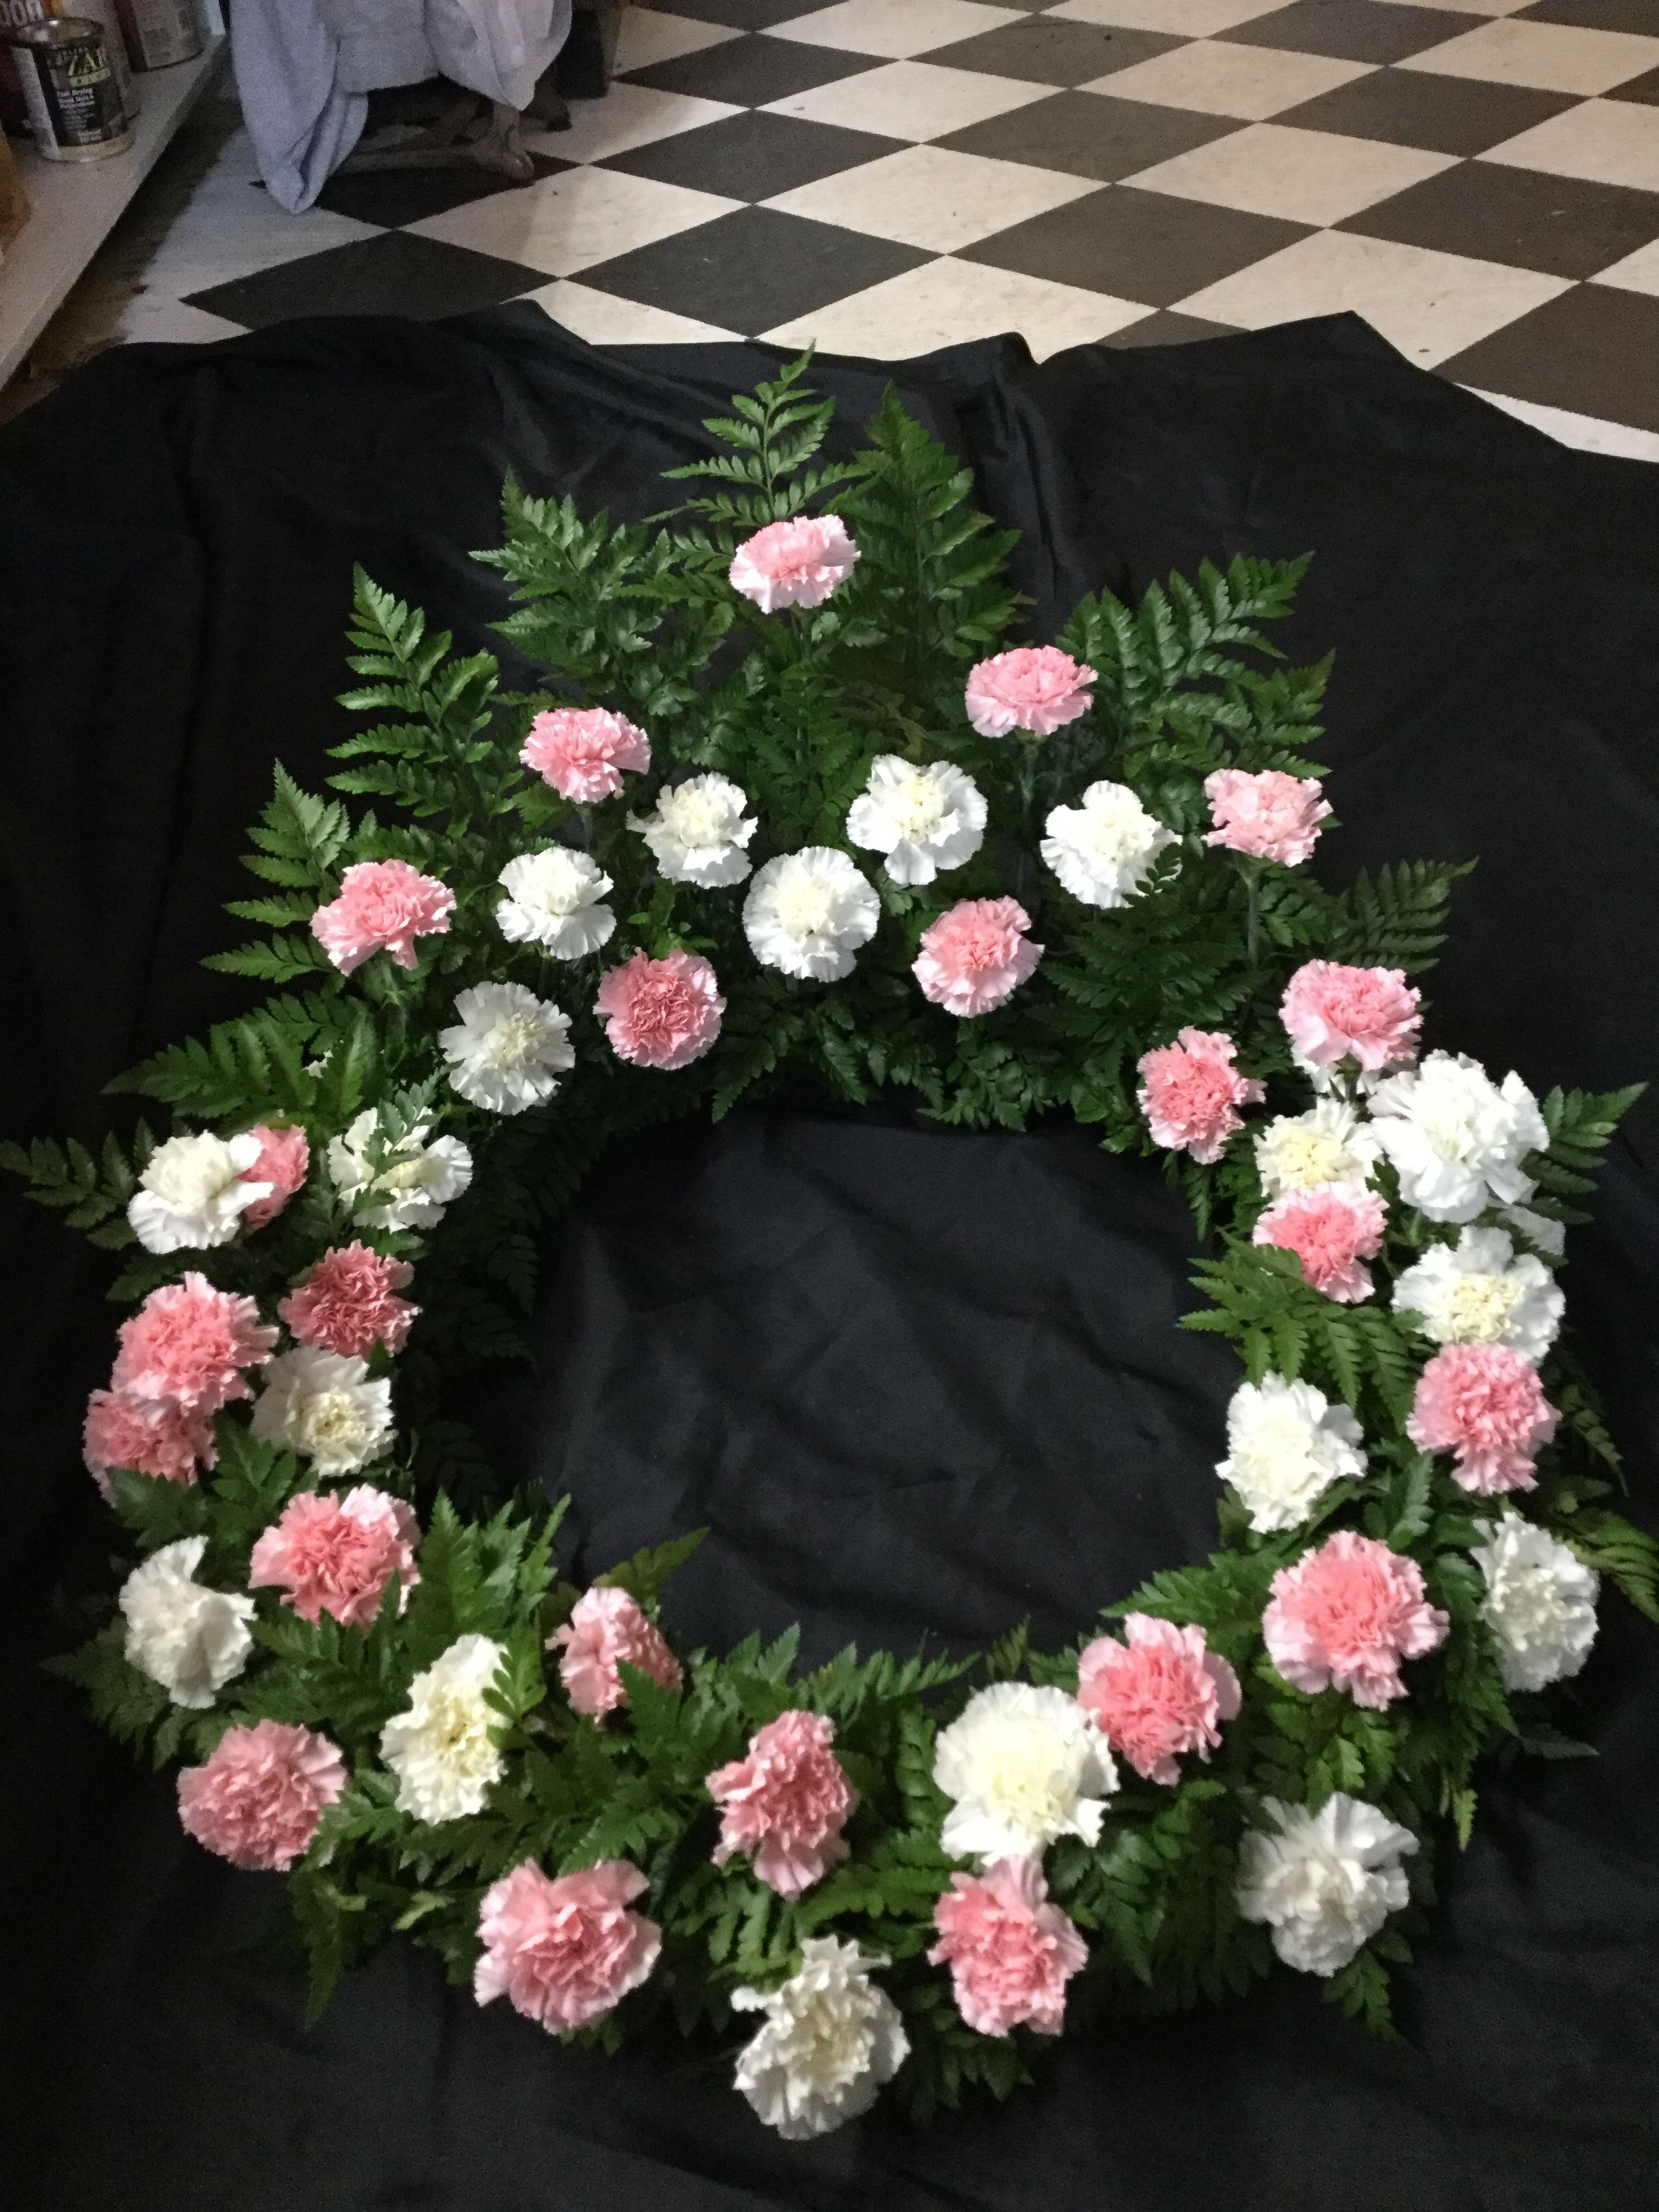 Funeral Flowers Wreath For Urn Pink Carnations White Carnations Funeral Flower Arrangements Flower Arrangements Pink Carnations